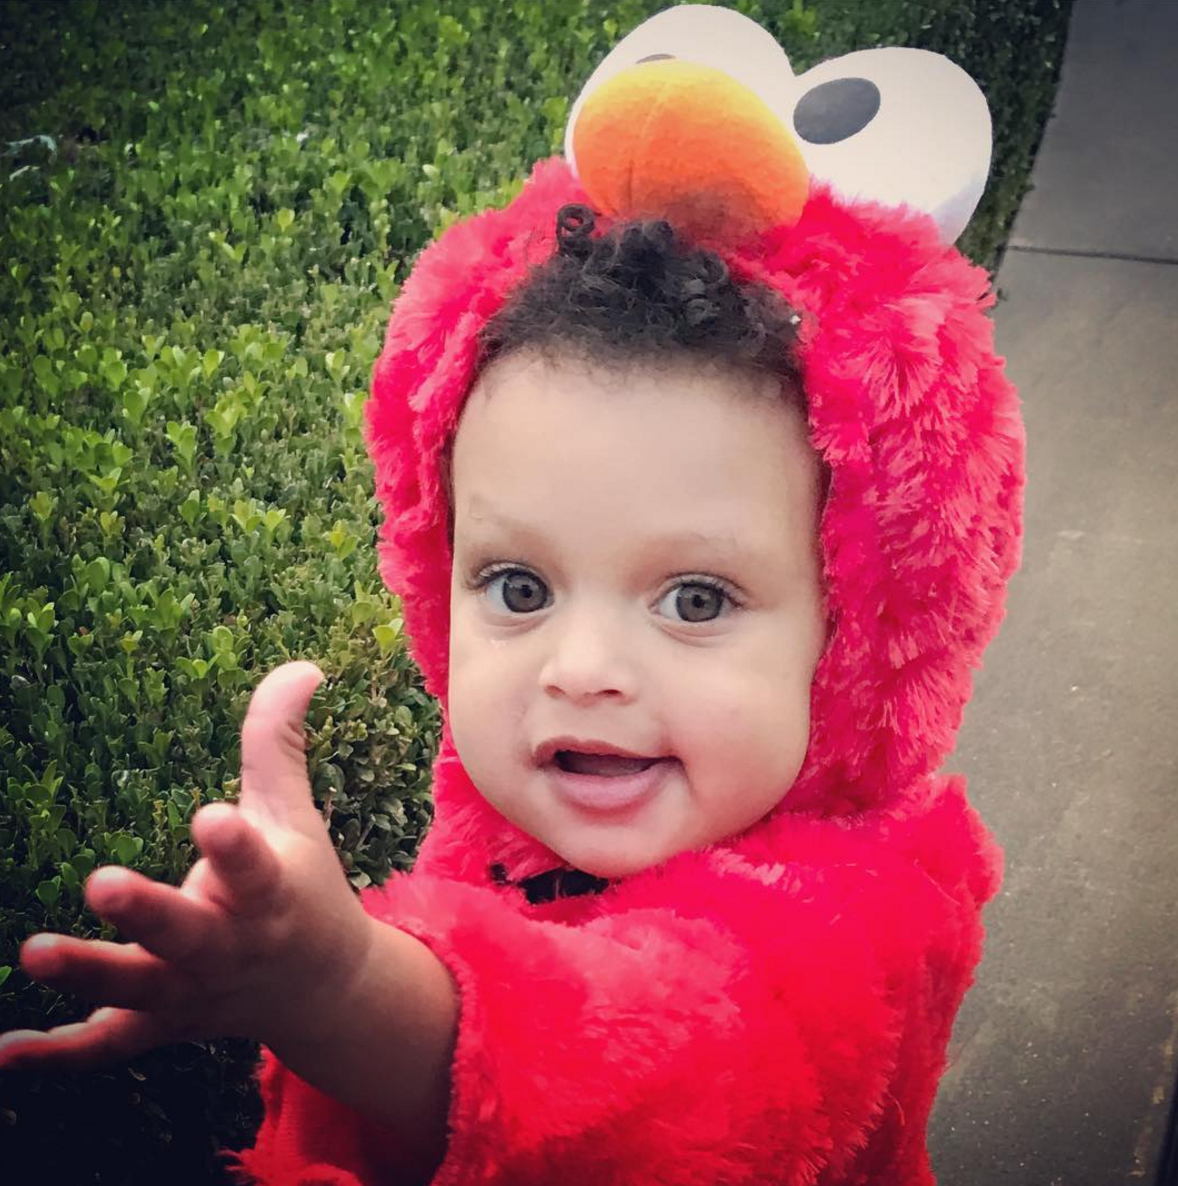 cute photos of ayesha and steph curry u0026 39 s daughters riley